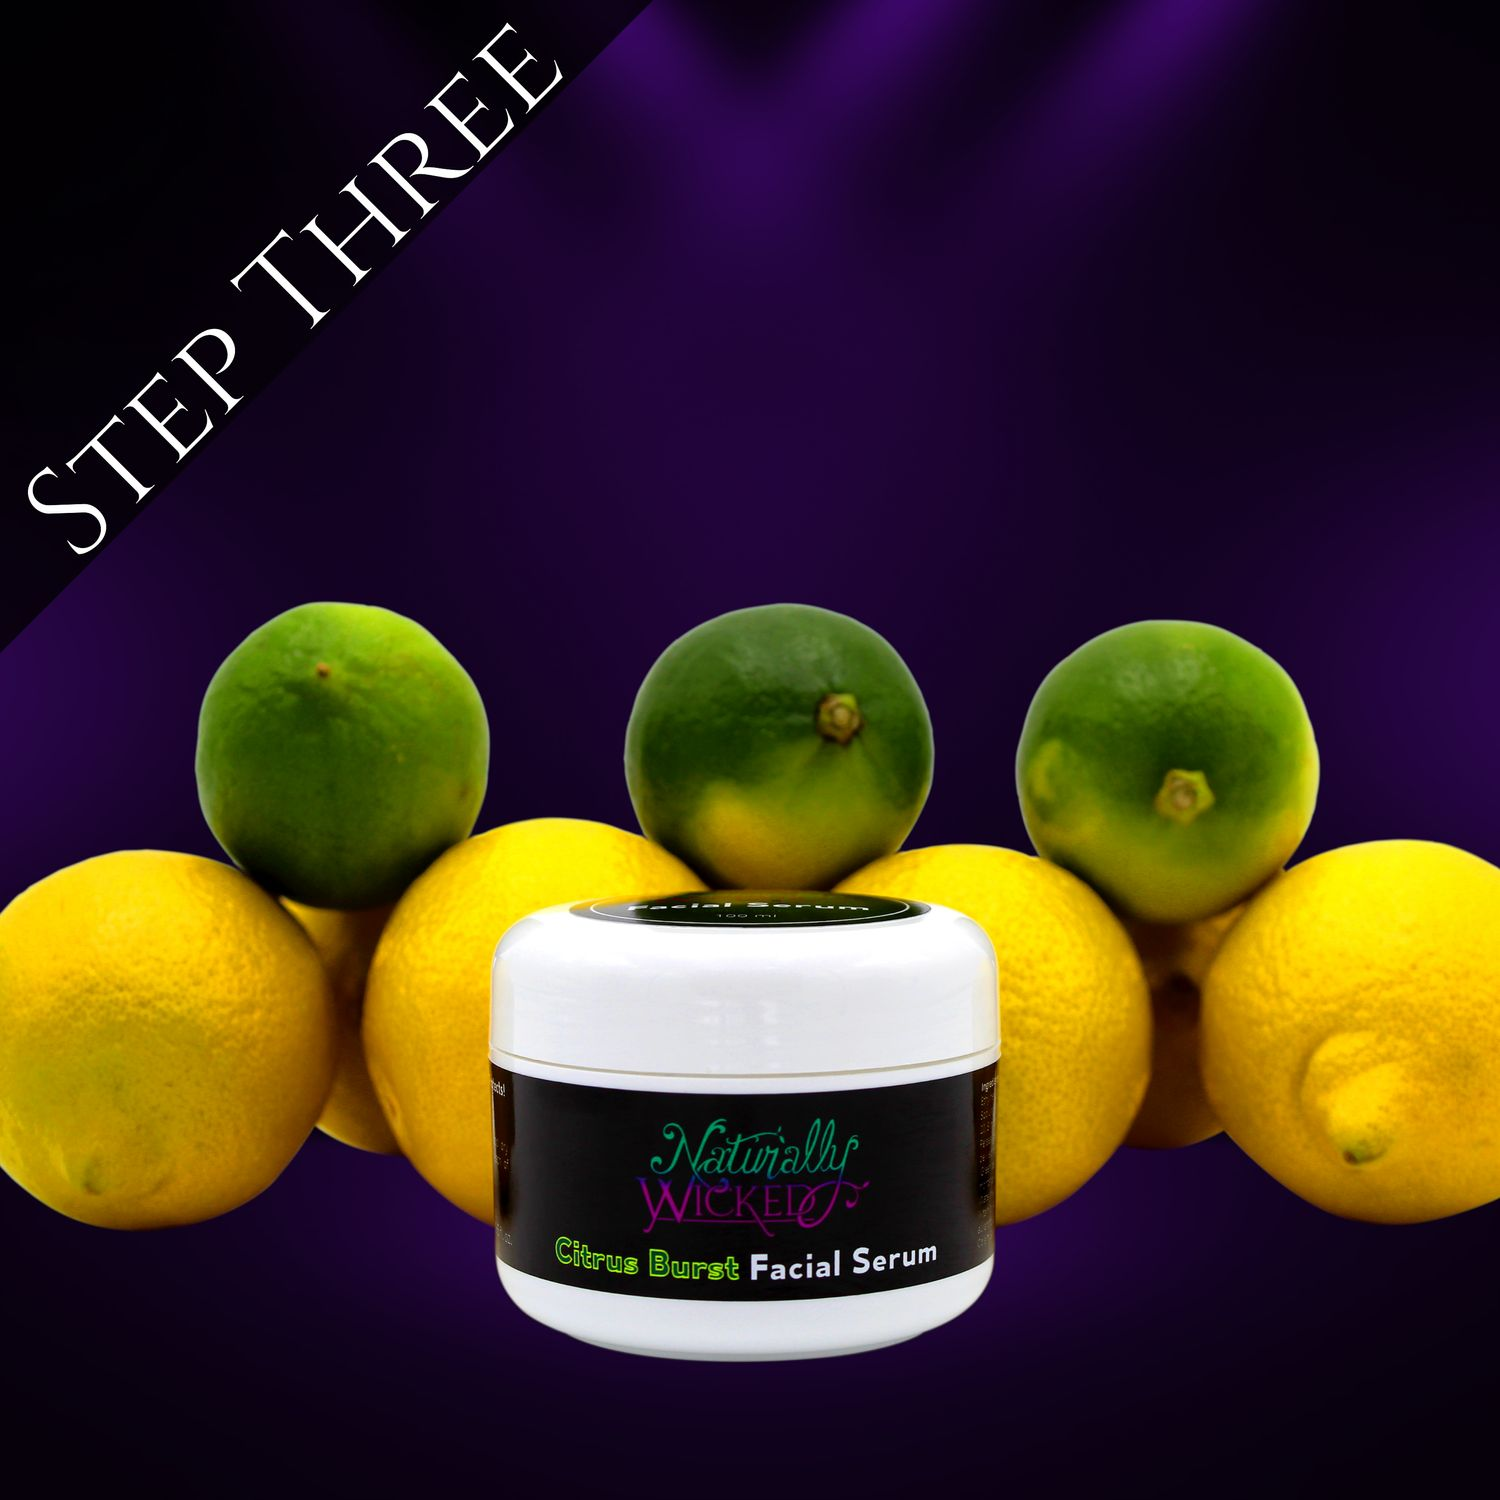 Naturally Wicked Citrus Burst Moisturising Facial Serum Surrounded By Citrus Fruits - Step 3